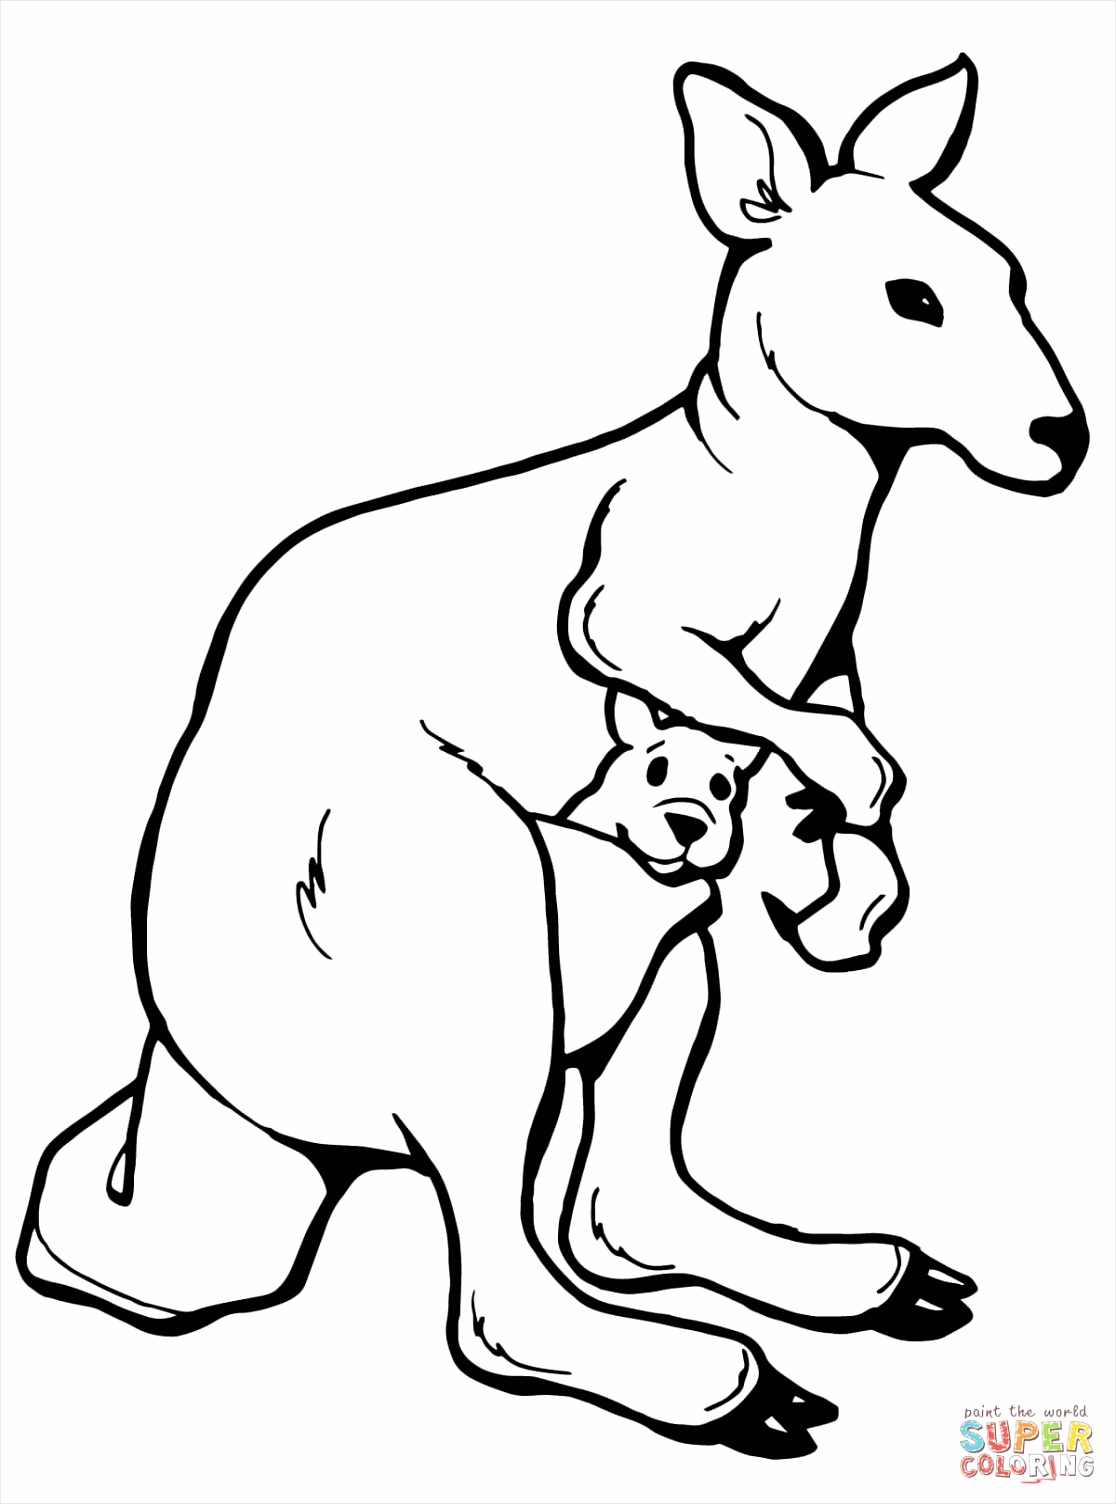 kangaroo with a joey coloring page ietrr